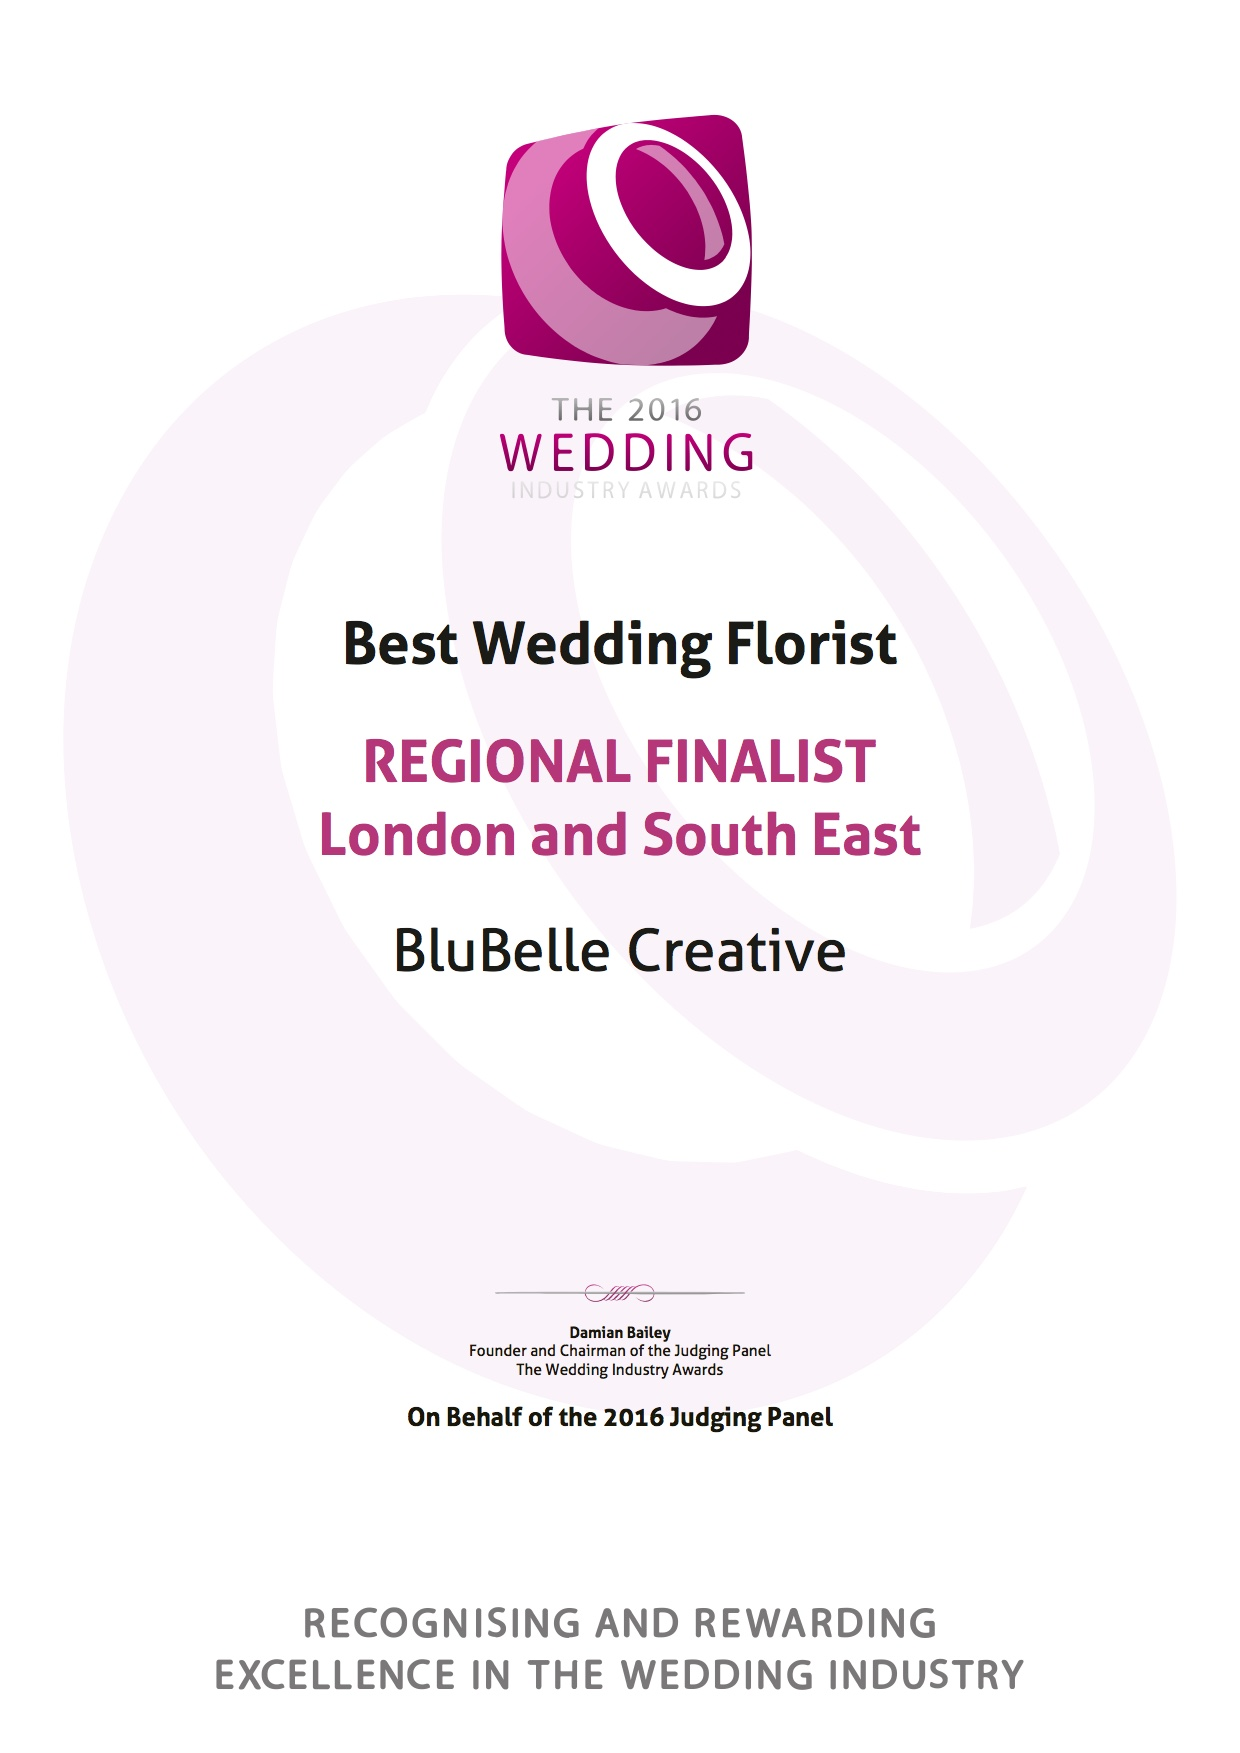 blubelle-creative-regional-finalist-london-and-south-east-2